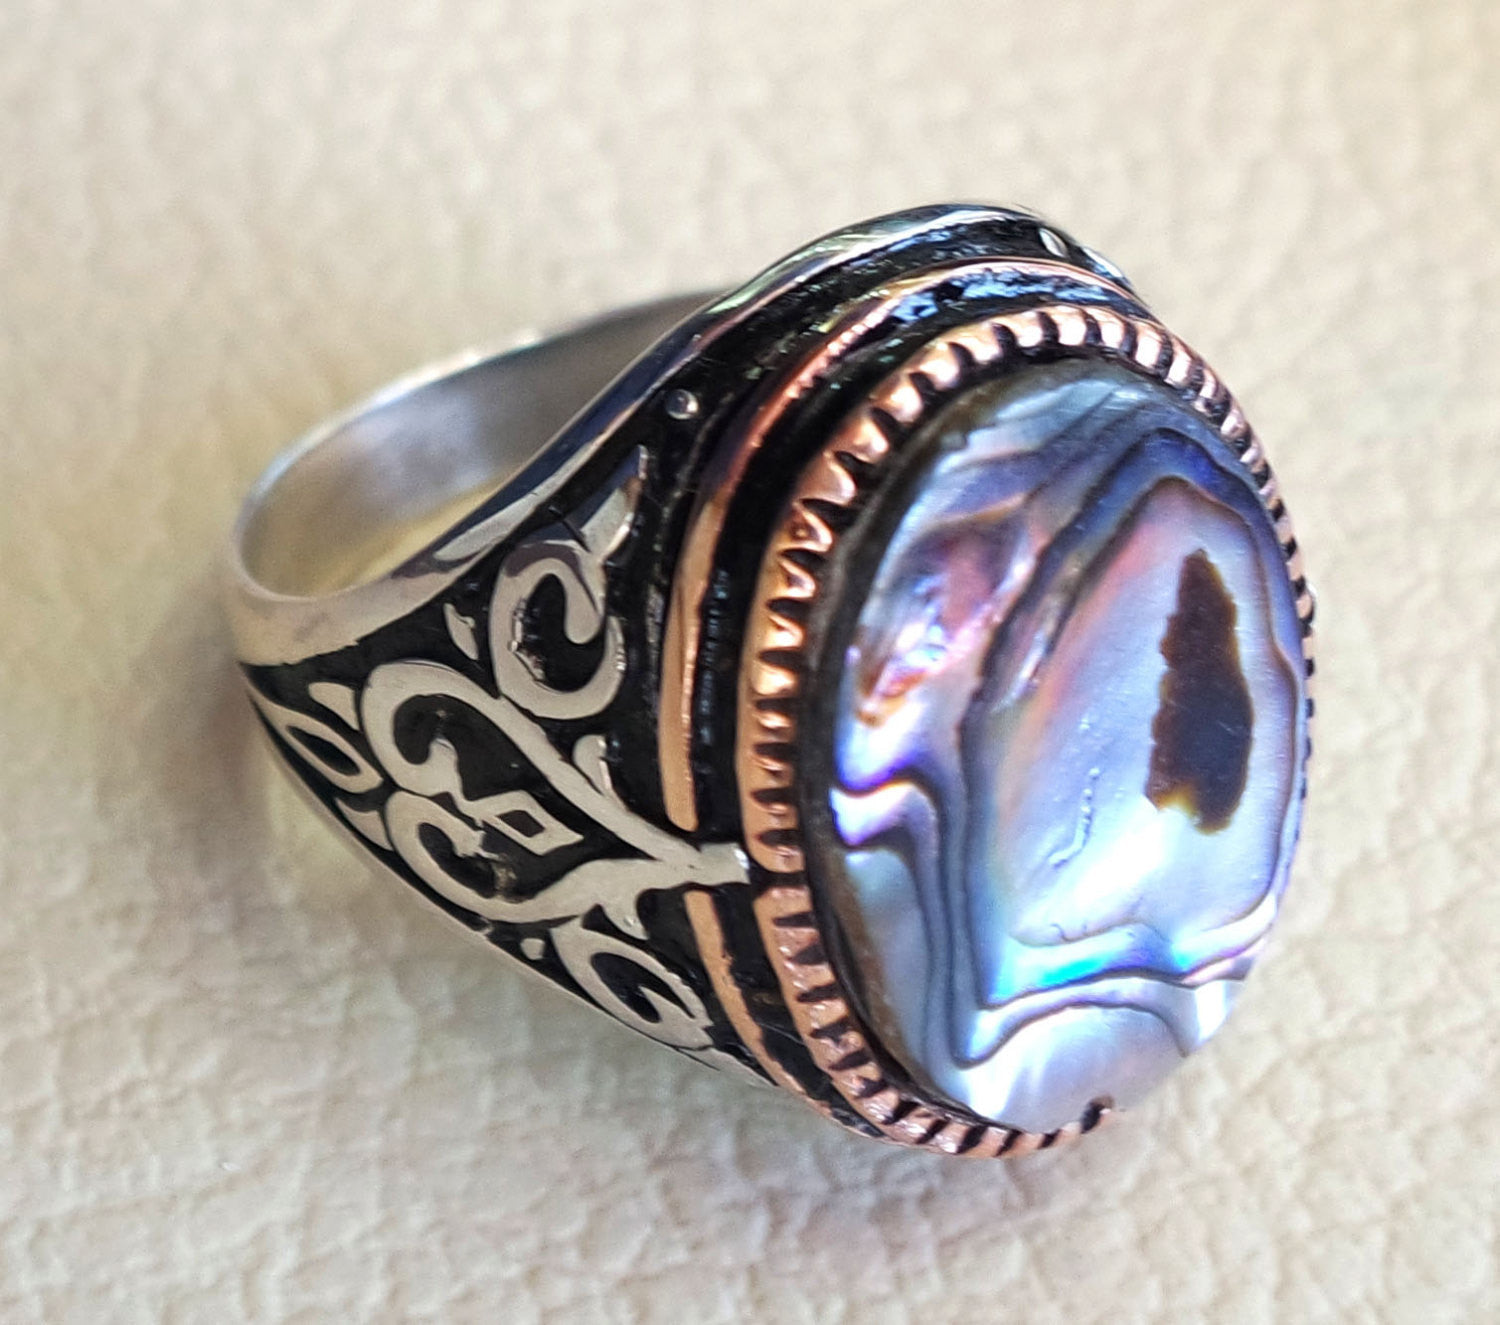 abalone shell colorful heavy ring sterling silver ottoman style all sizes jewelry men unique gift all sizes fast shipping bronze frame